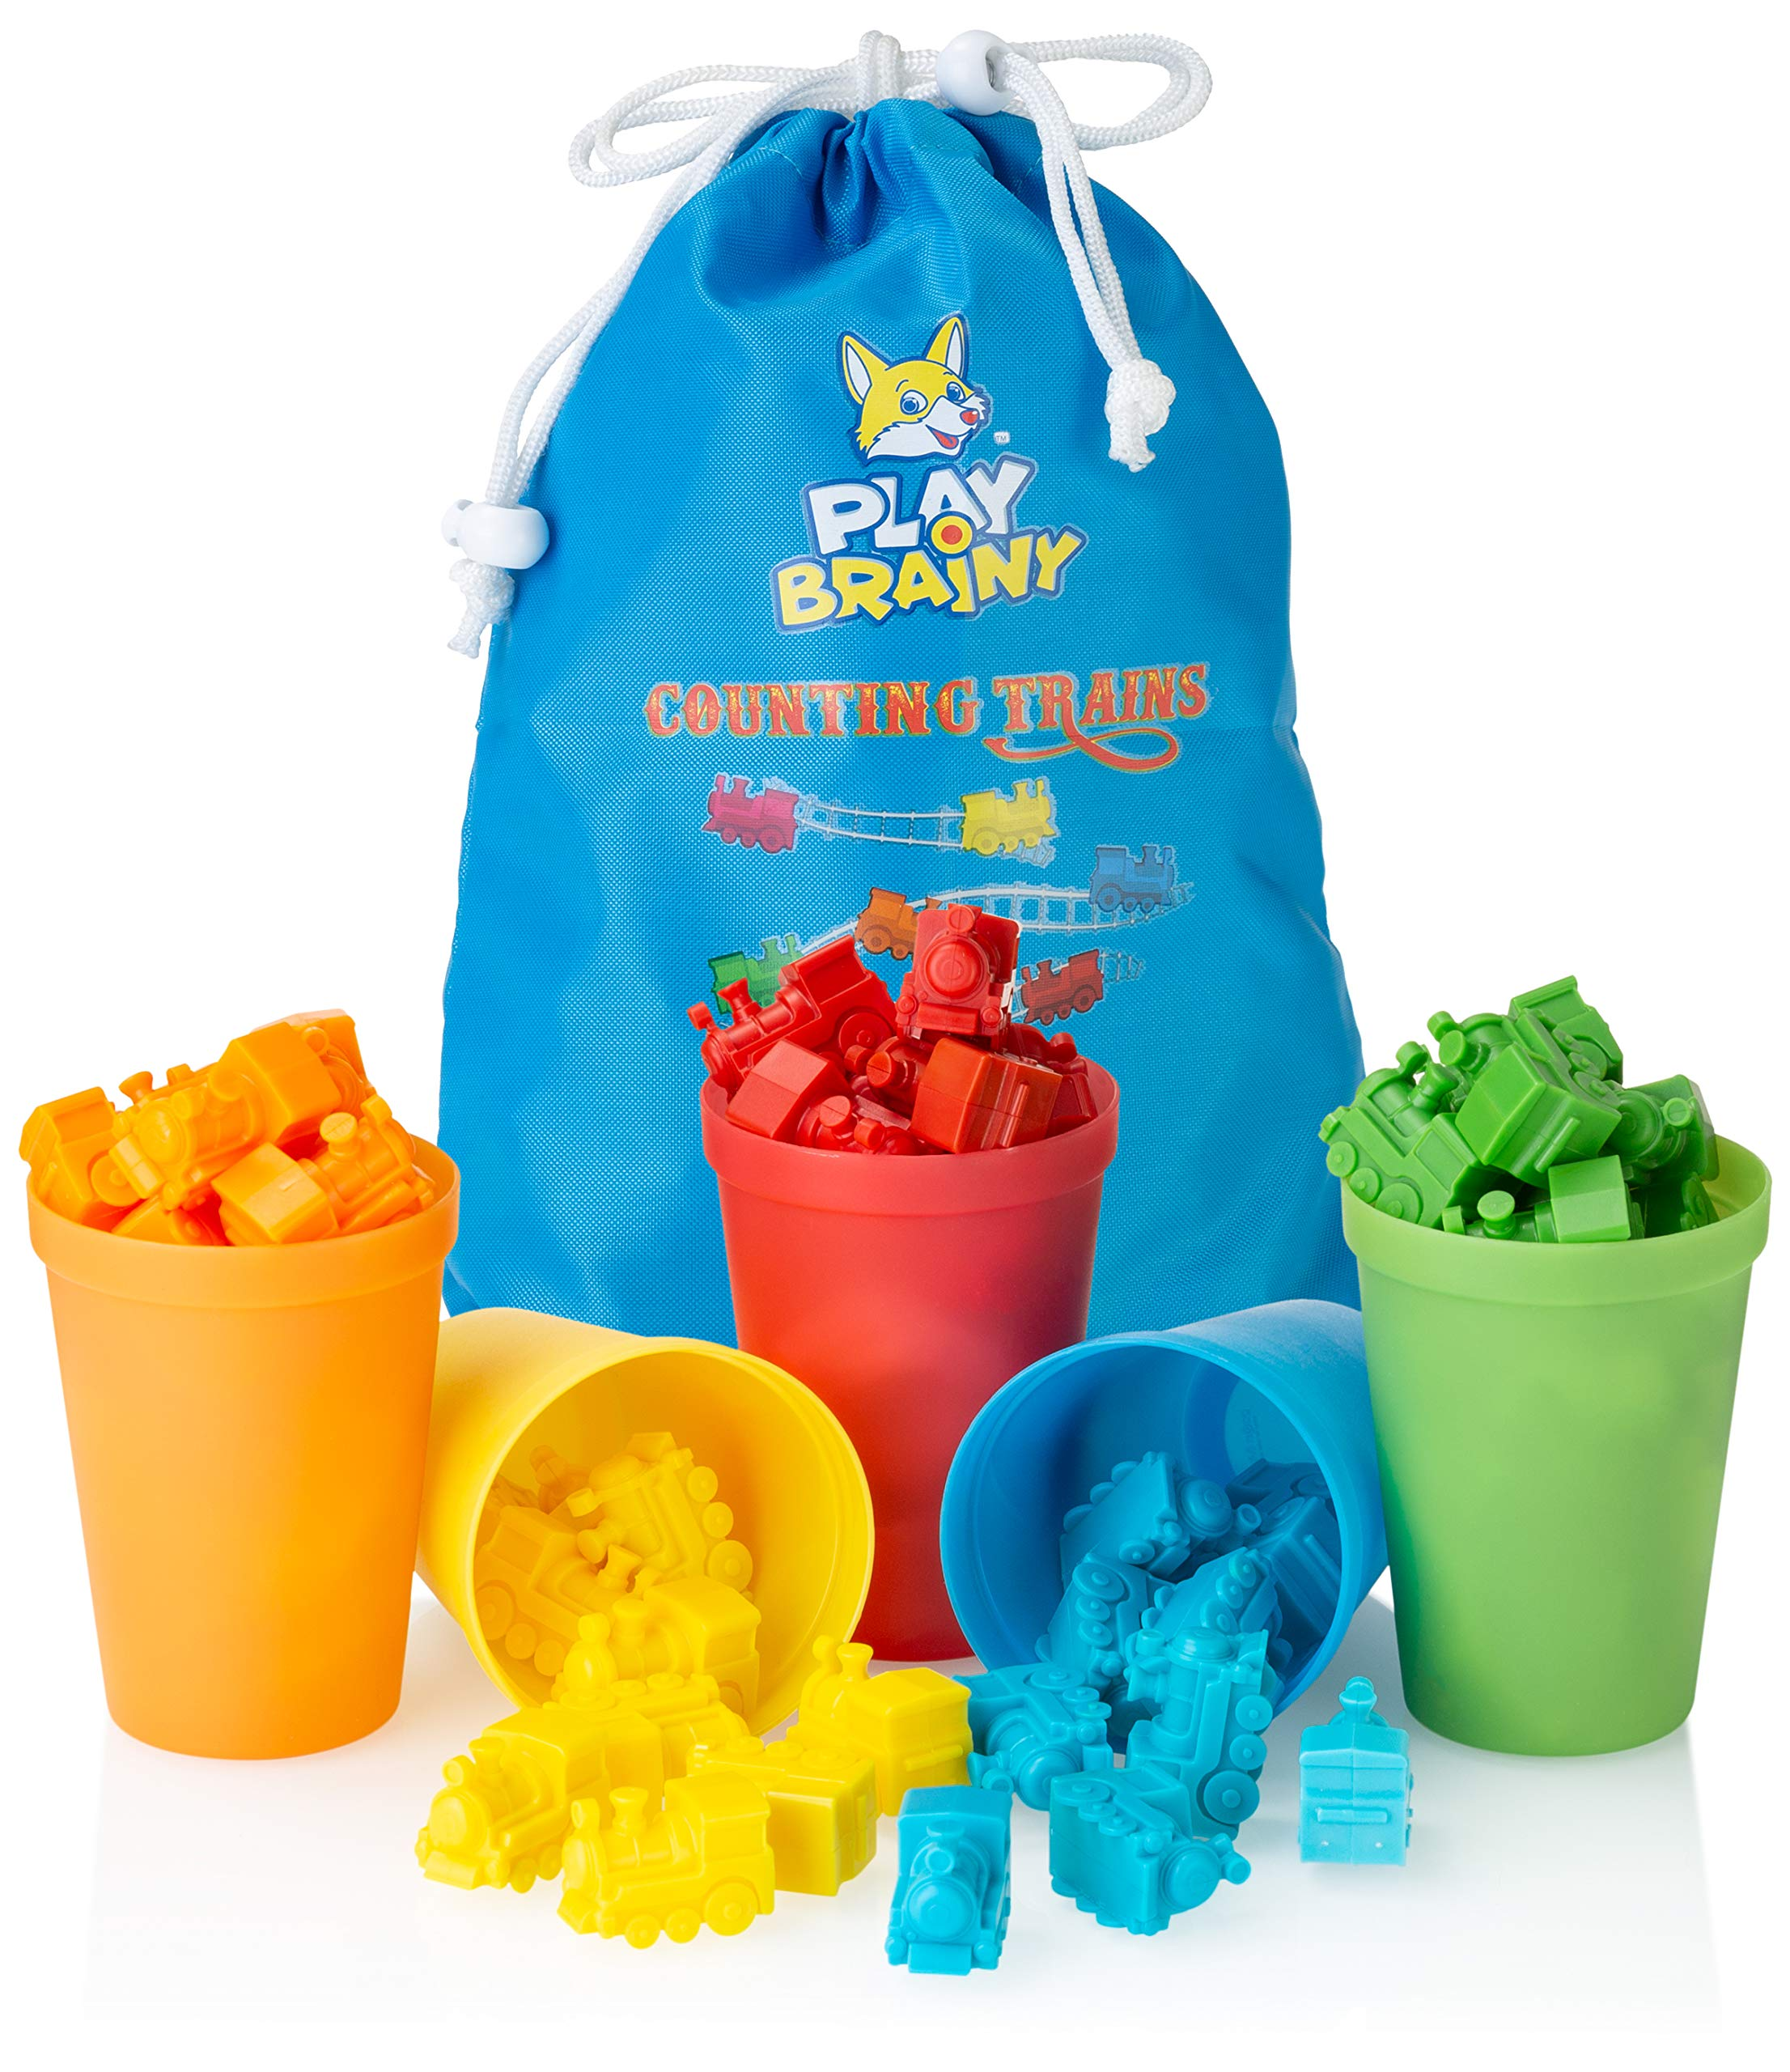 Play Brainy Colorful Counting Trains and Cups - Fun Educational Sorting Trains with Color Sorting Cups - Educational Montessori Toy for Toddlers & Children - 50 Count Trains, 5 Colored Cups, & Bag by Play Brainy